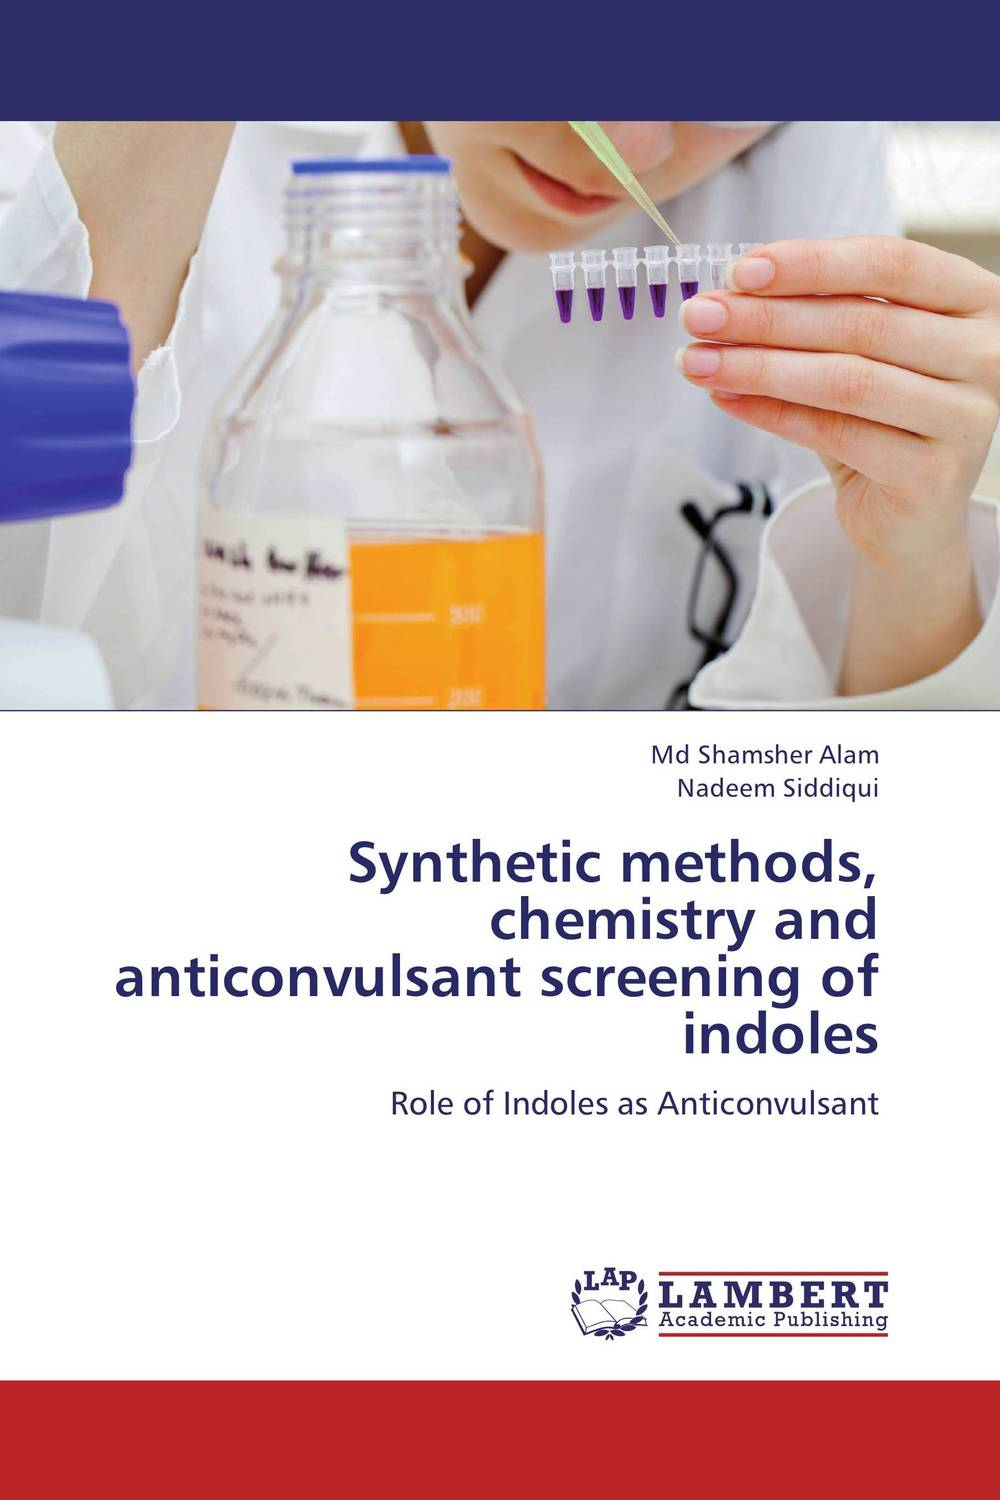 Synthetic methods, chemistry and anticonvulsant screening of indoles medicinal chemistry of anticancer drugs